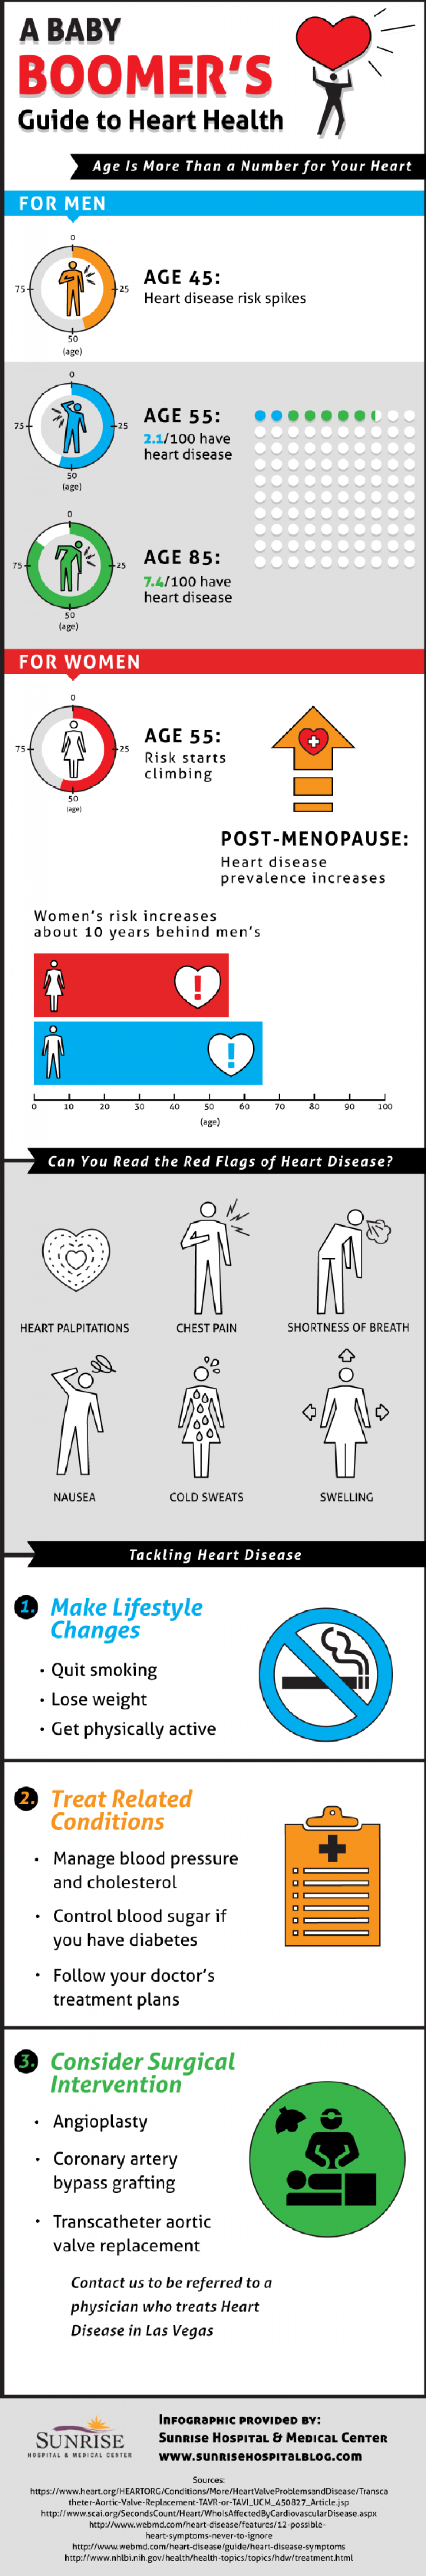 A Baby Boomer's Guide to Heart Health Infographic